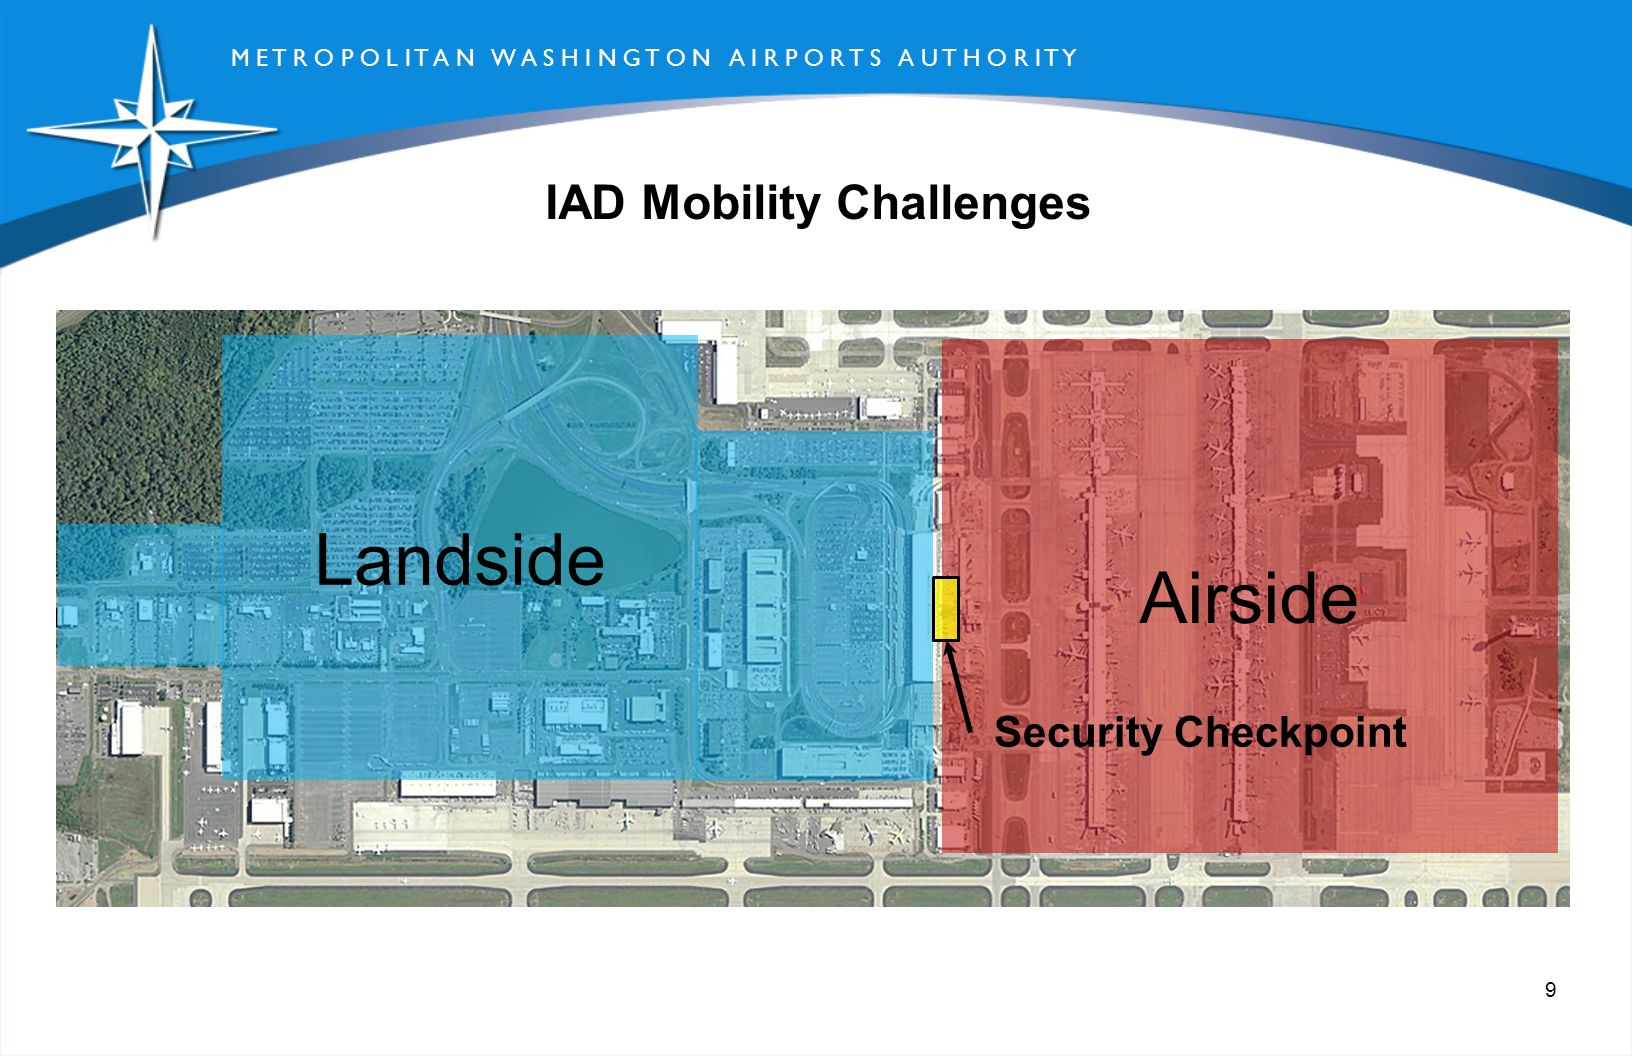 M E T R O P O L I T A N W A S H I N G T O N A I R P O R T S A U T H O R I T Y 9 Landside Airside IAD Mobility Challenges Security Checkpoint